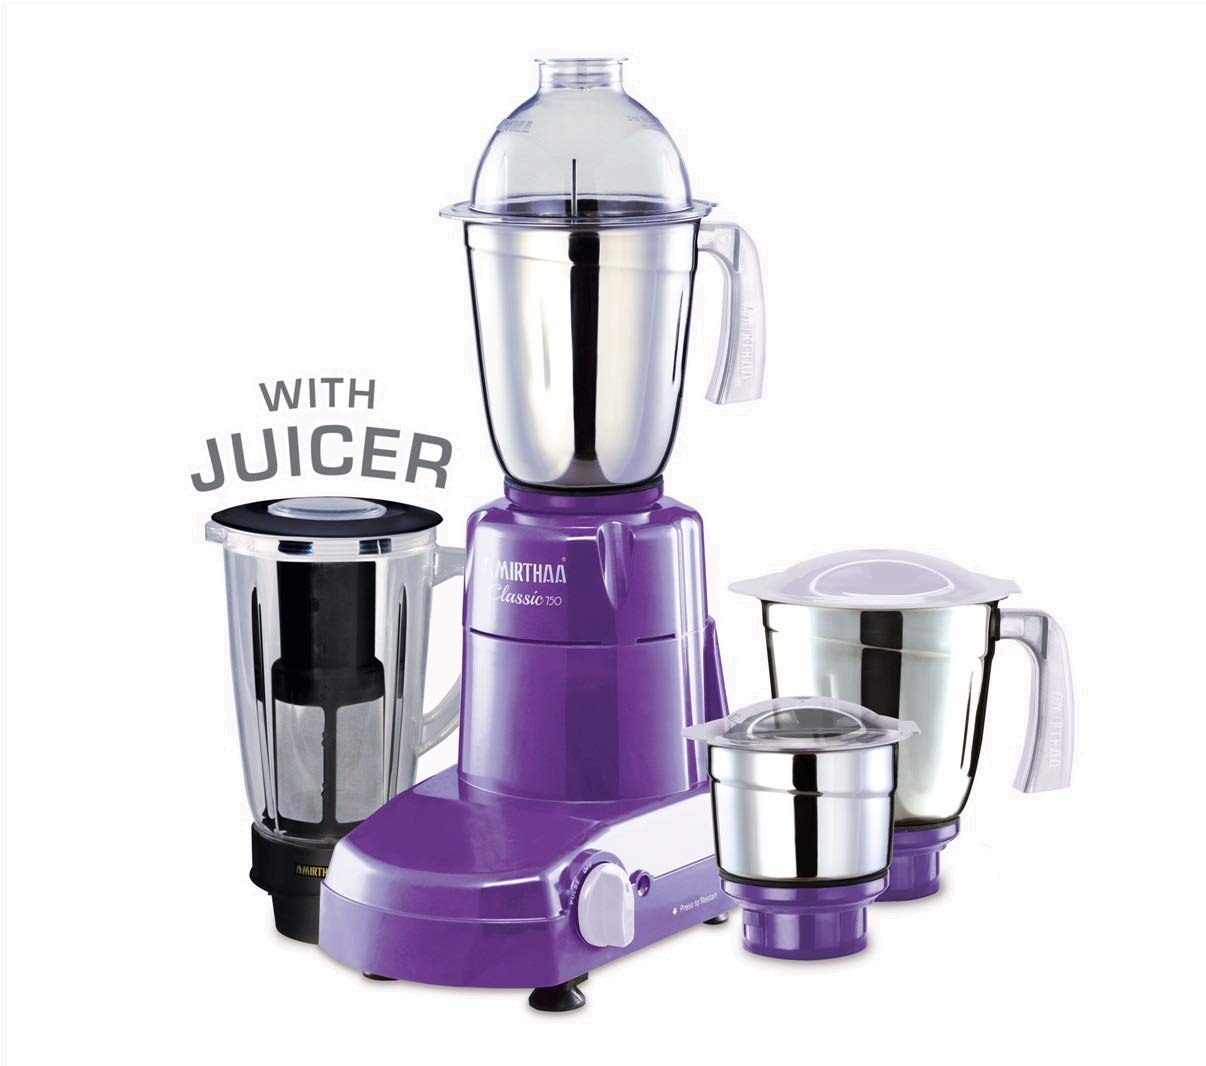 Buy Amirthaa Classic 750W Juicer Mixer Grinder with 4 Jars